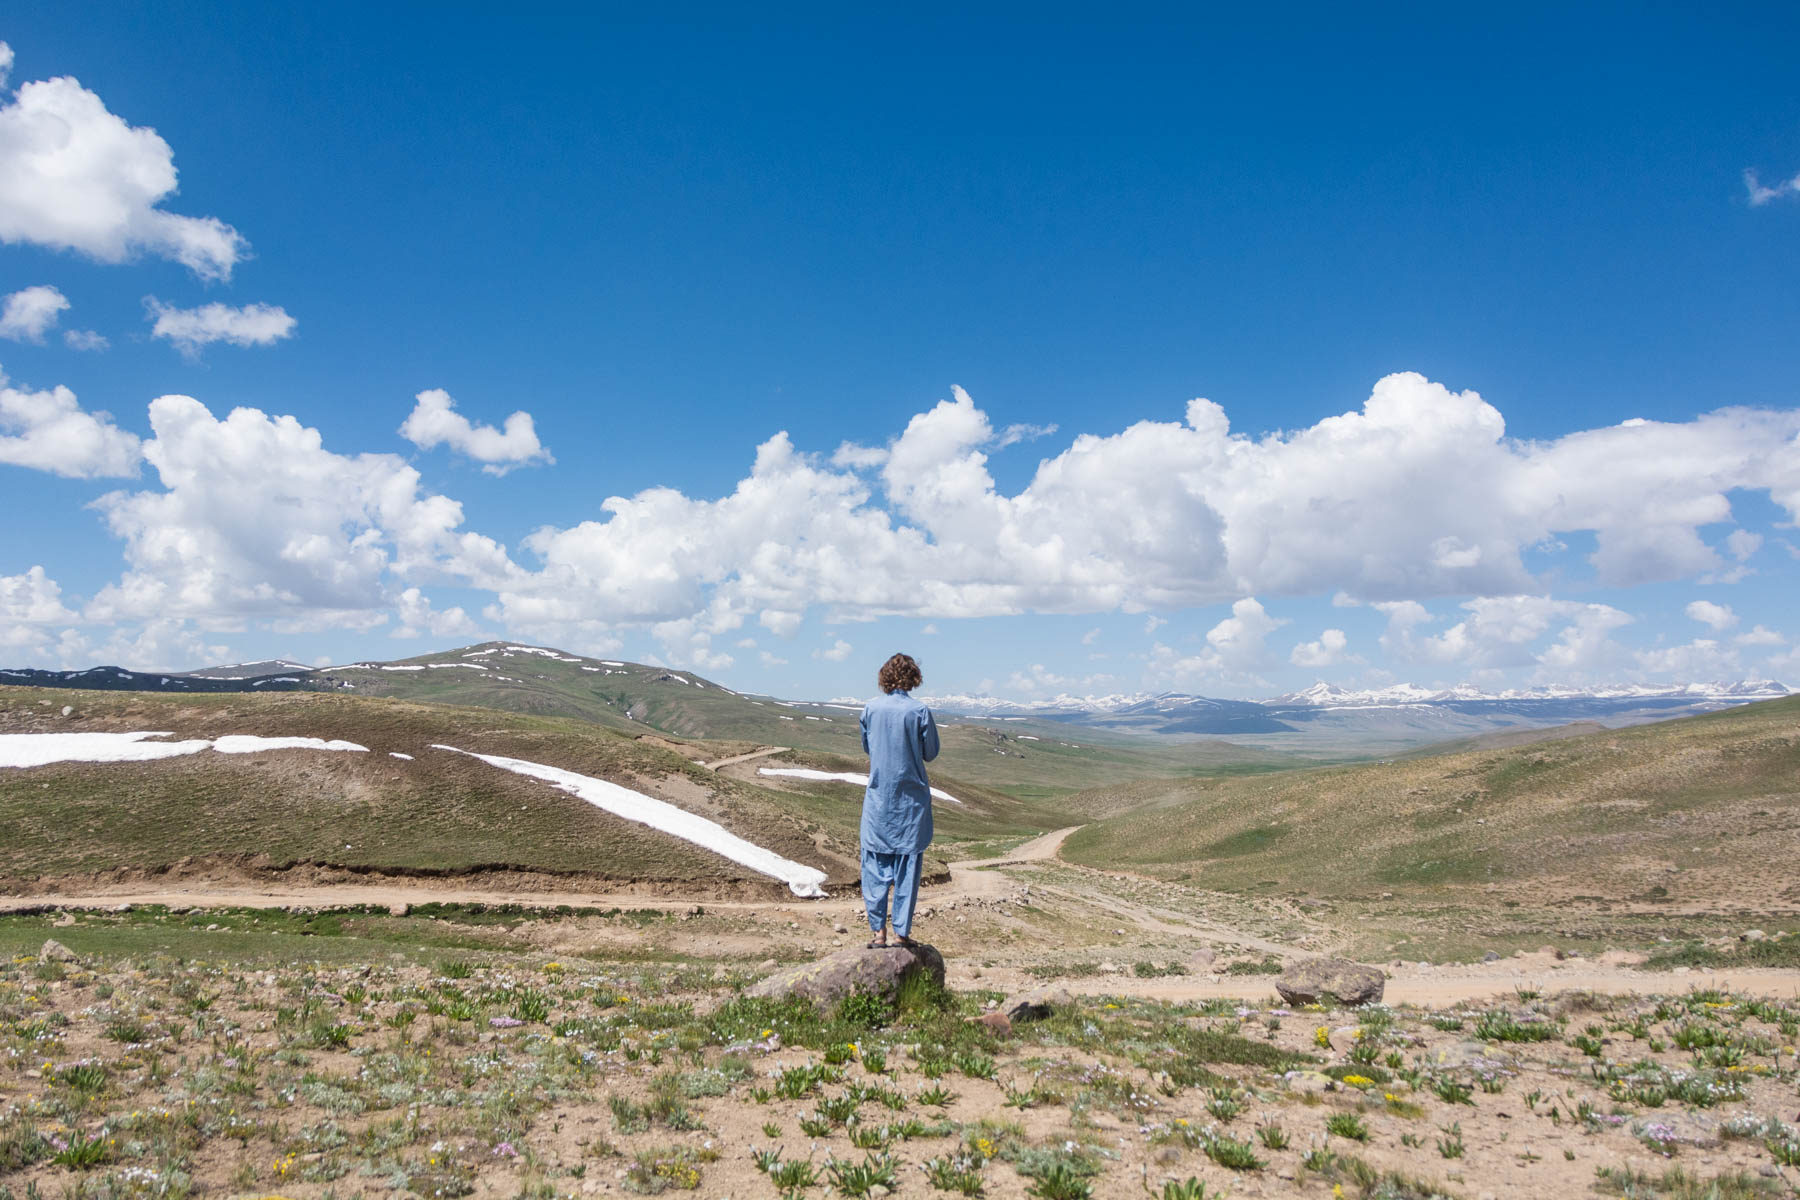 Where do I need security in Pakistan? - No security with Sebastiaan in Deosai Plains - Lost With Purpose